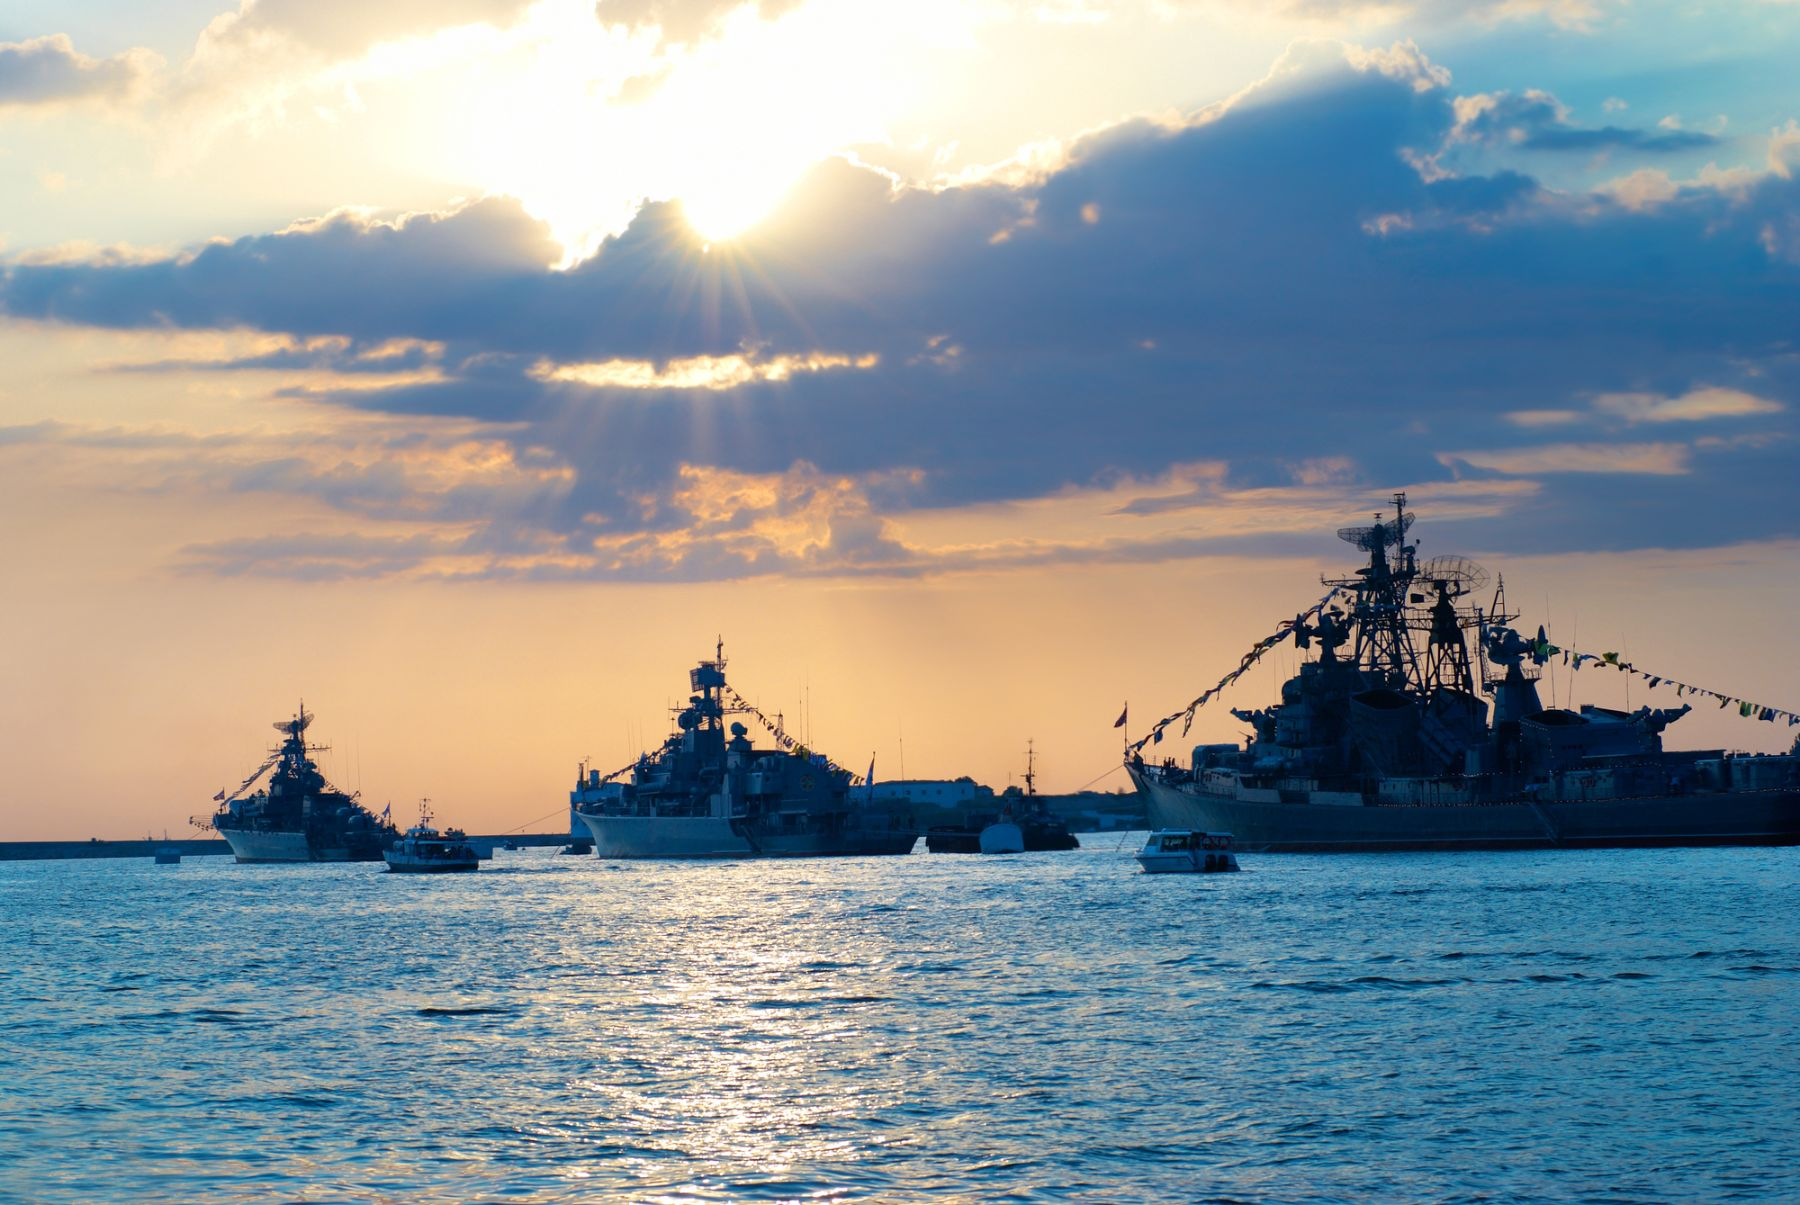 Naval ships on the ocean